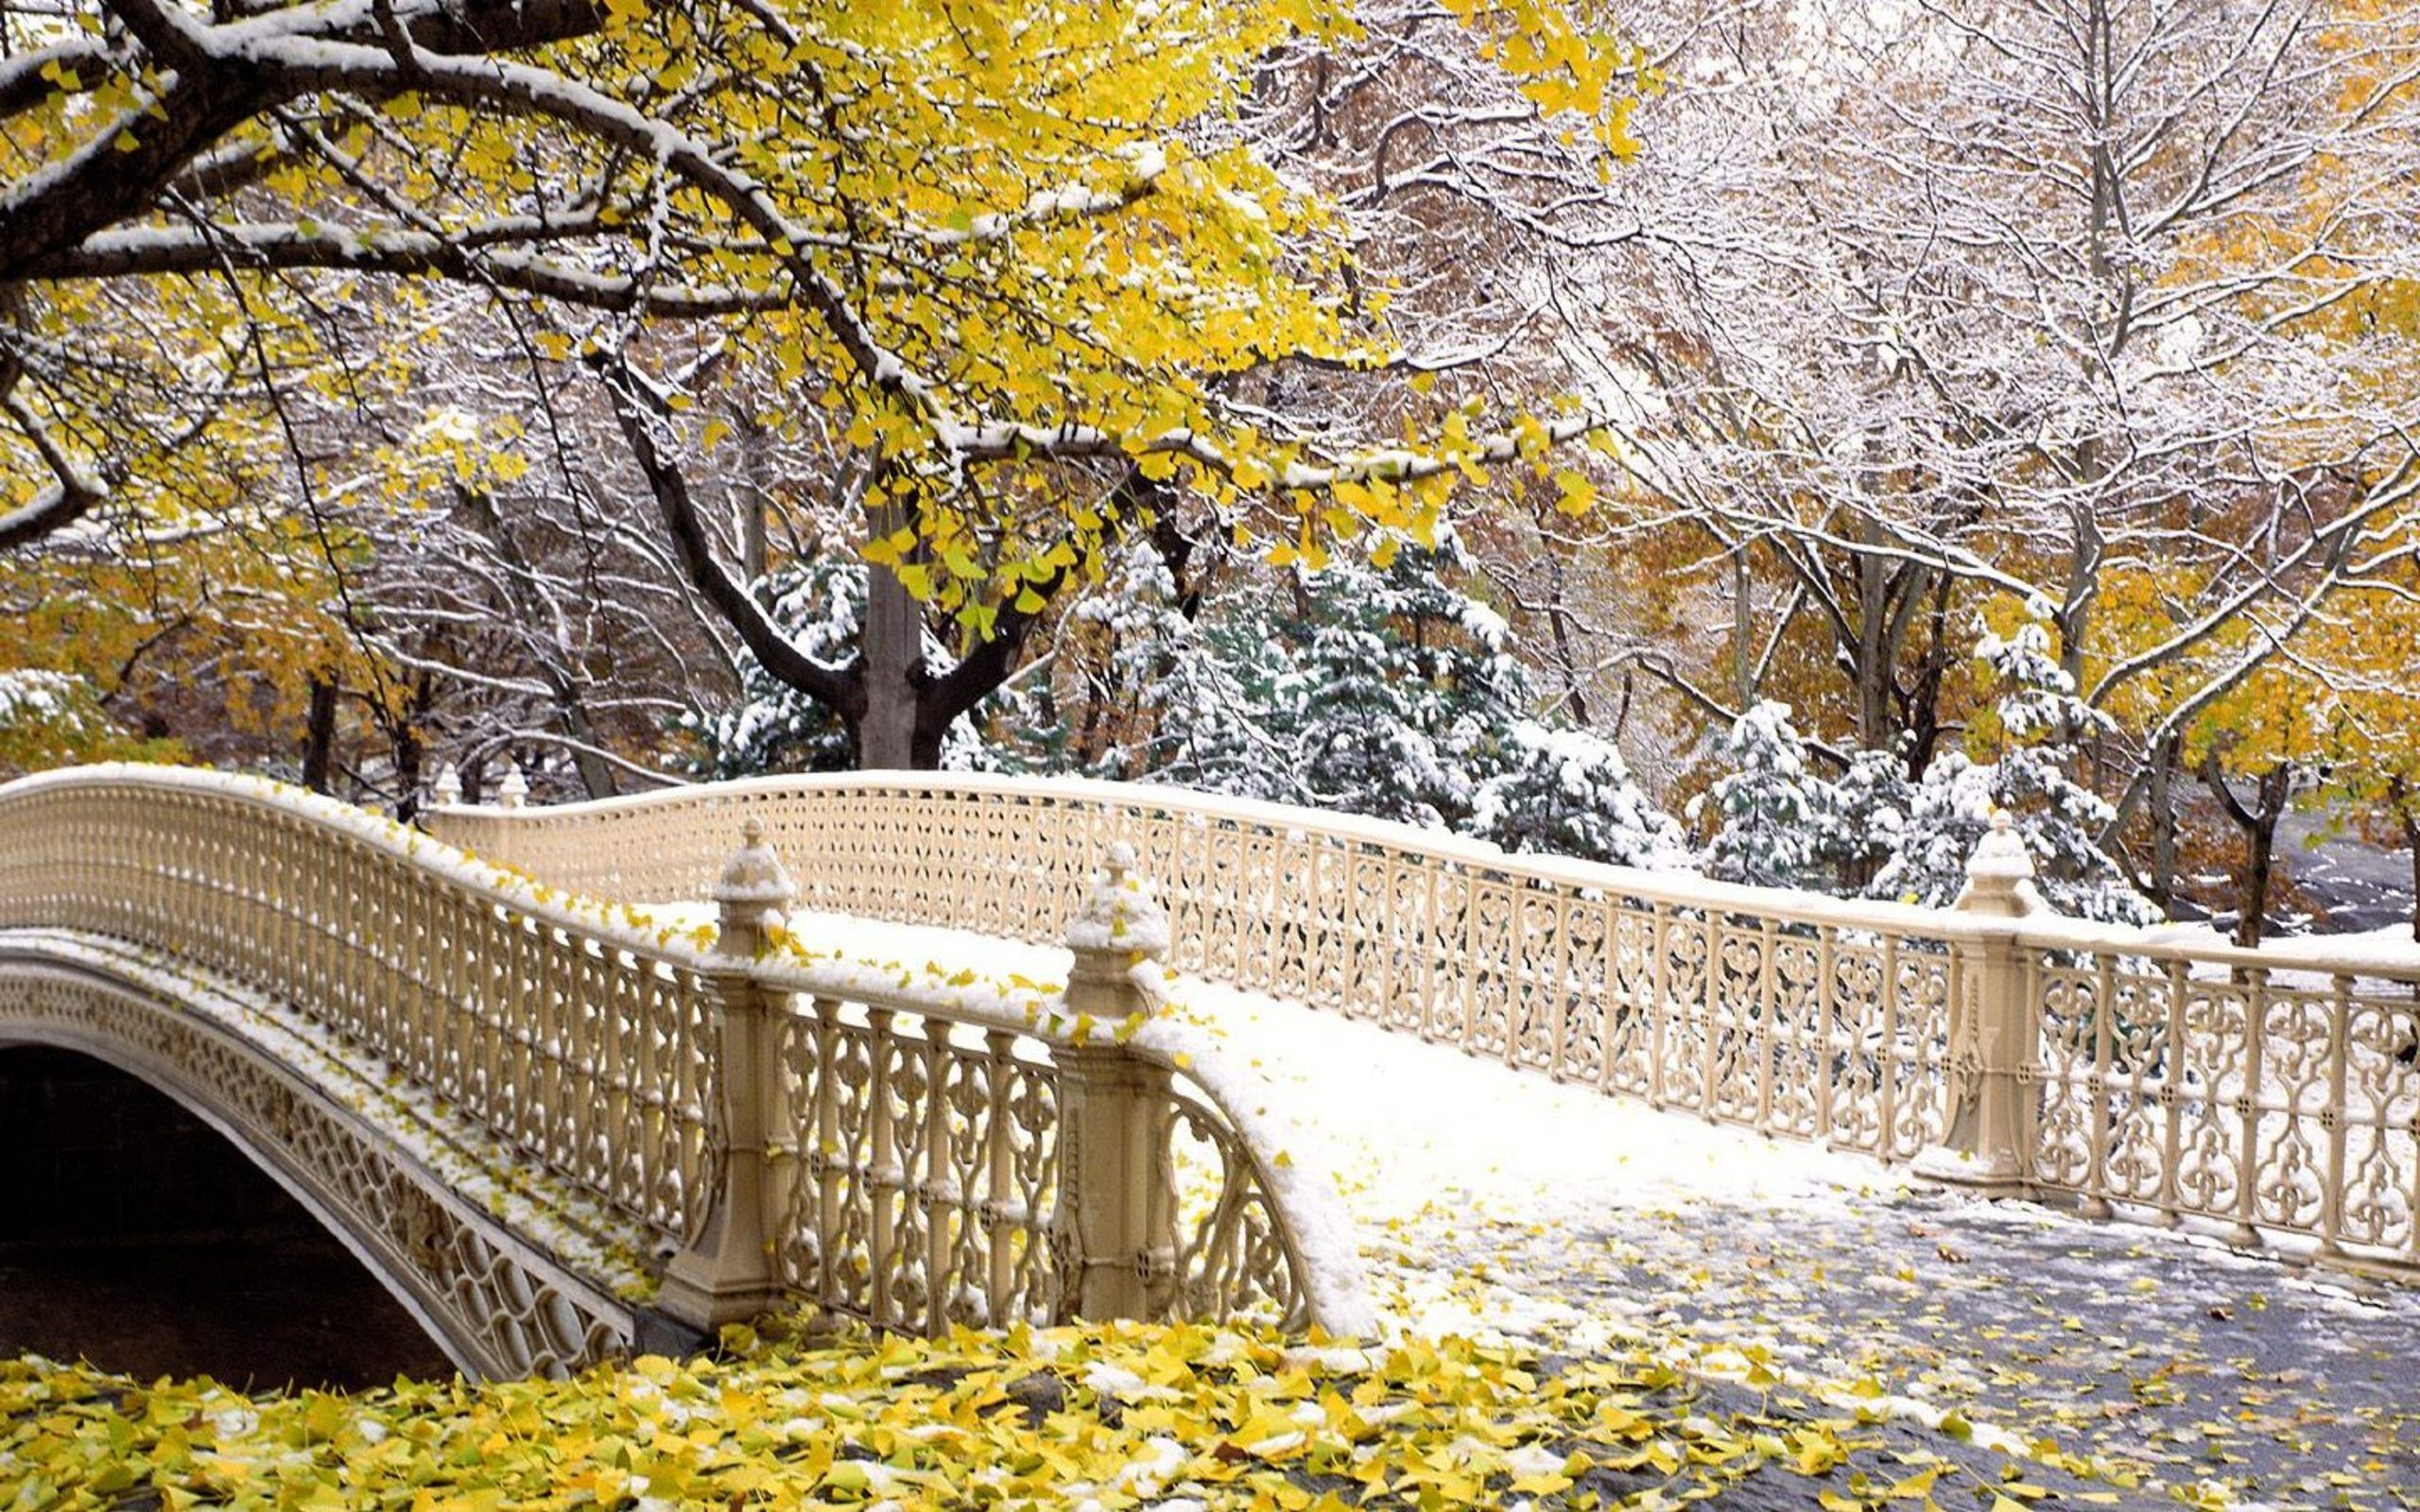 Image Downloads - The Official Website of Central Park NYC  |Autumn Central Park Screensavers